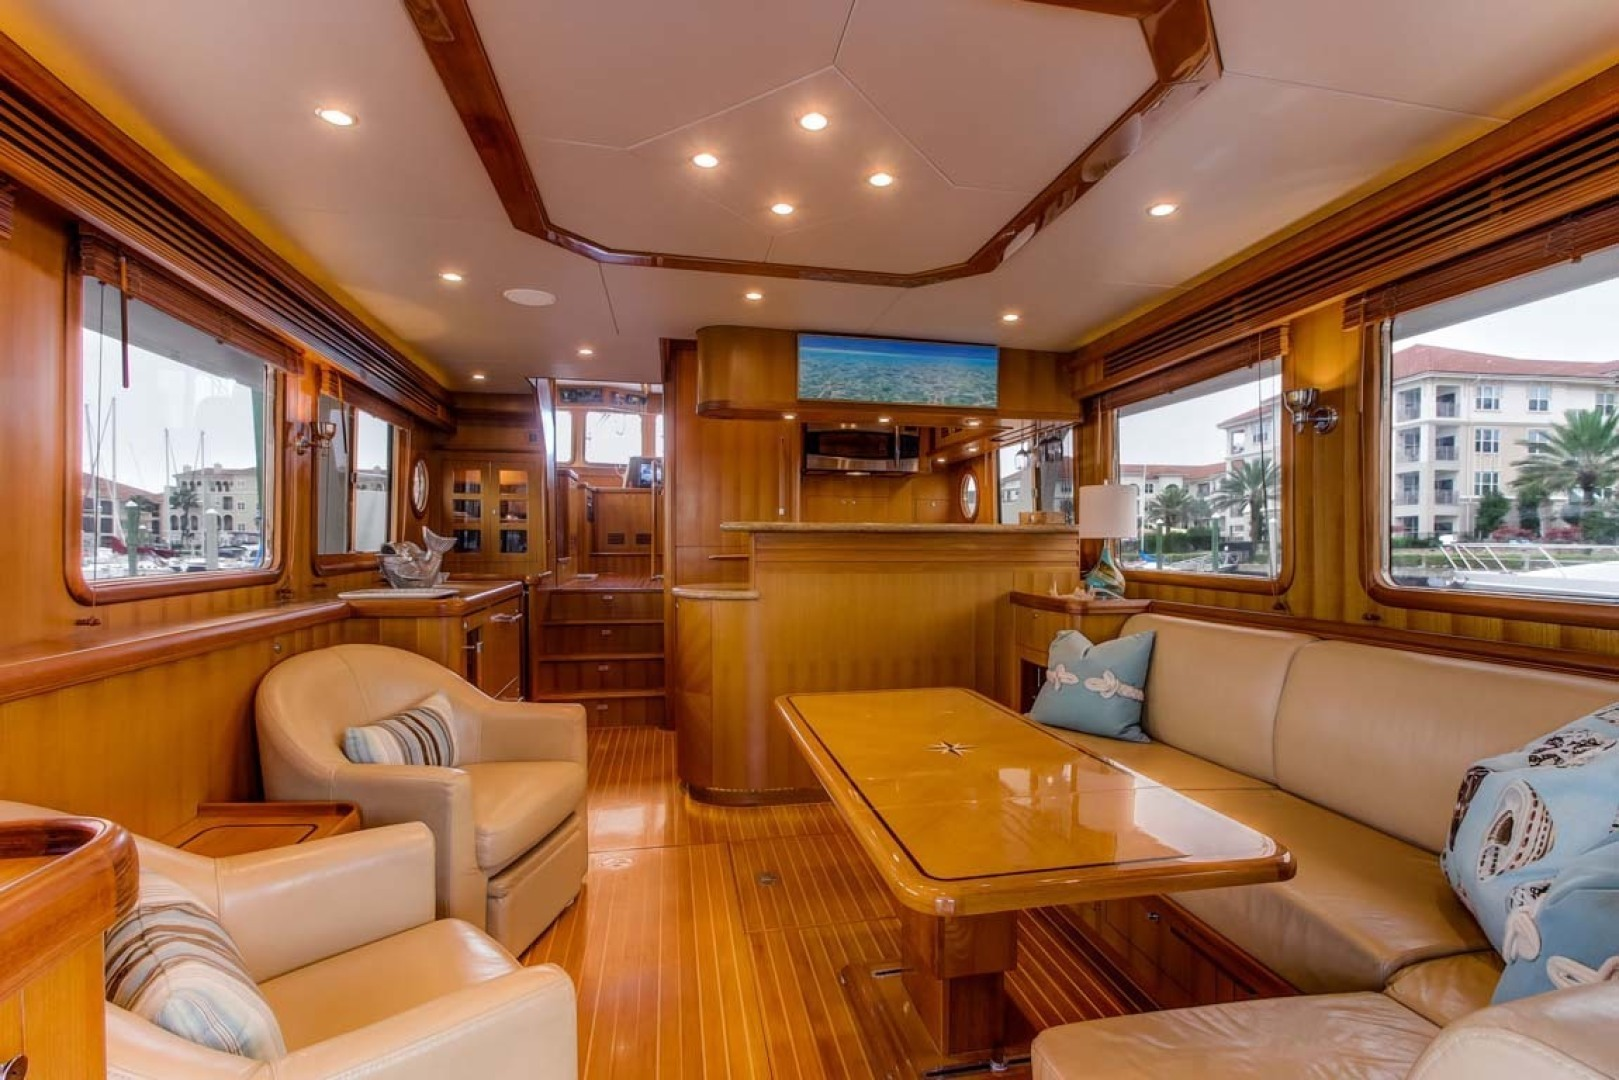 Selene-60 Ocean Trawler 2010-Gypsy Magic Jacksonville-Florida-United States-Salon-1346734 | Thumbnail